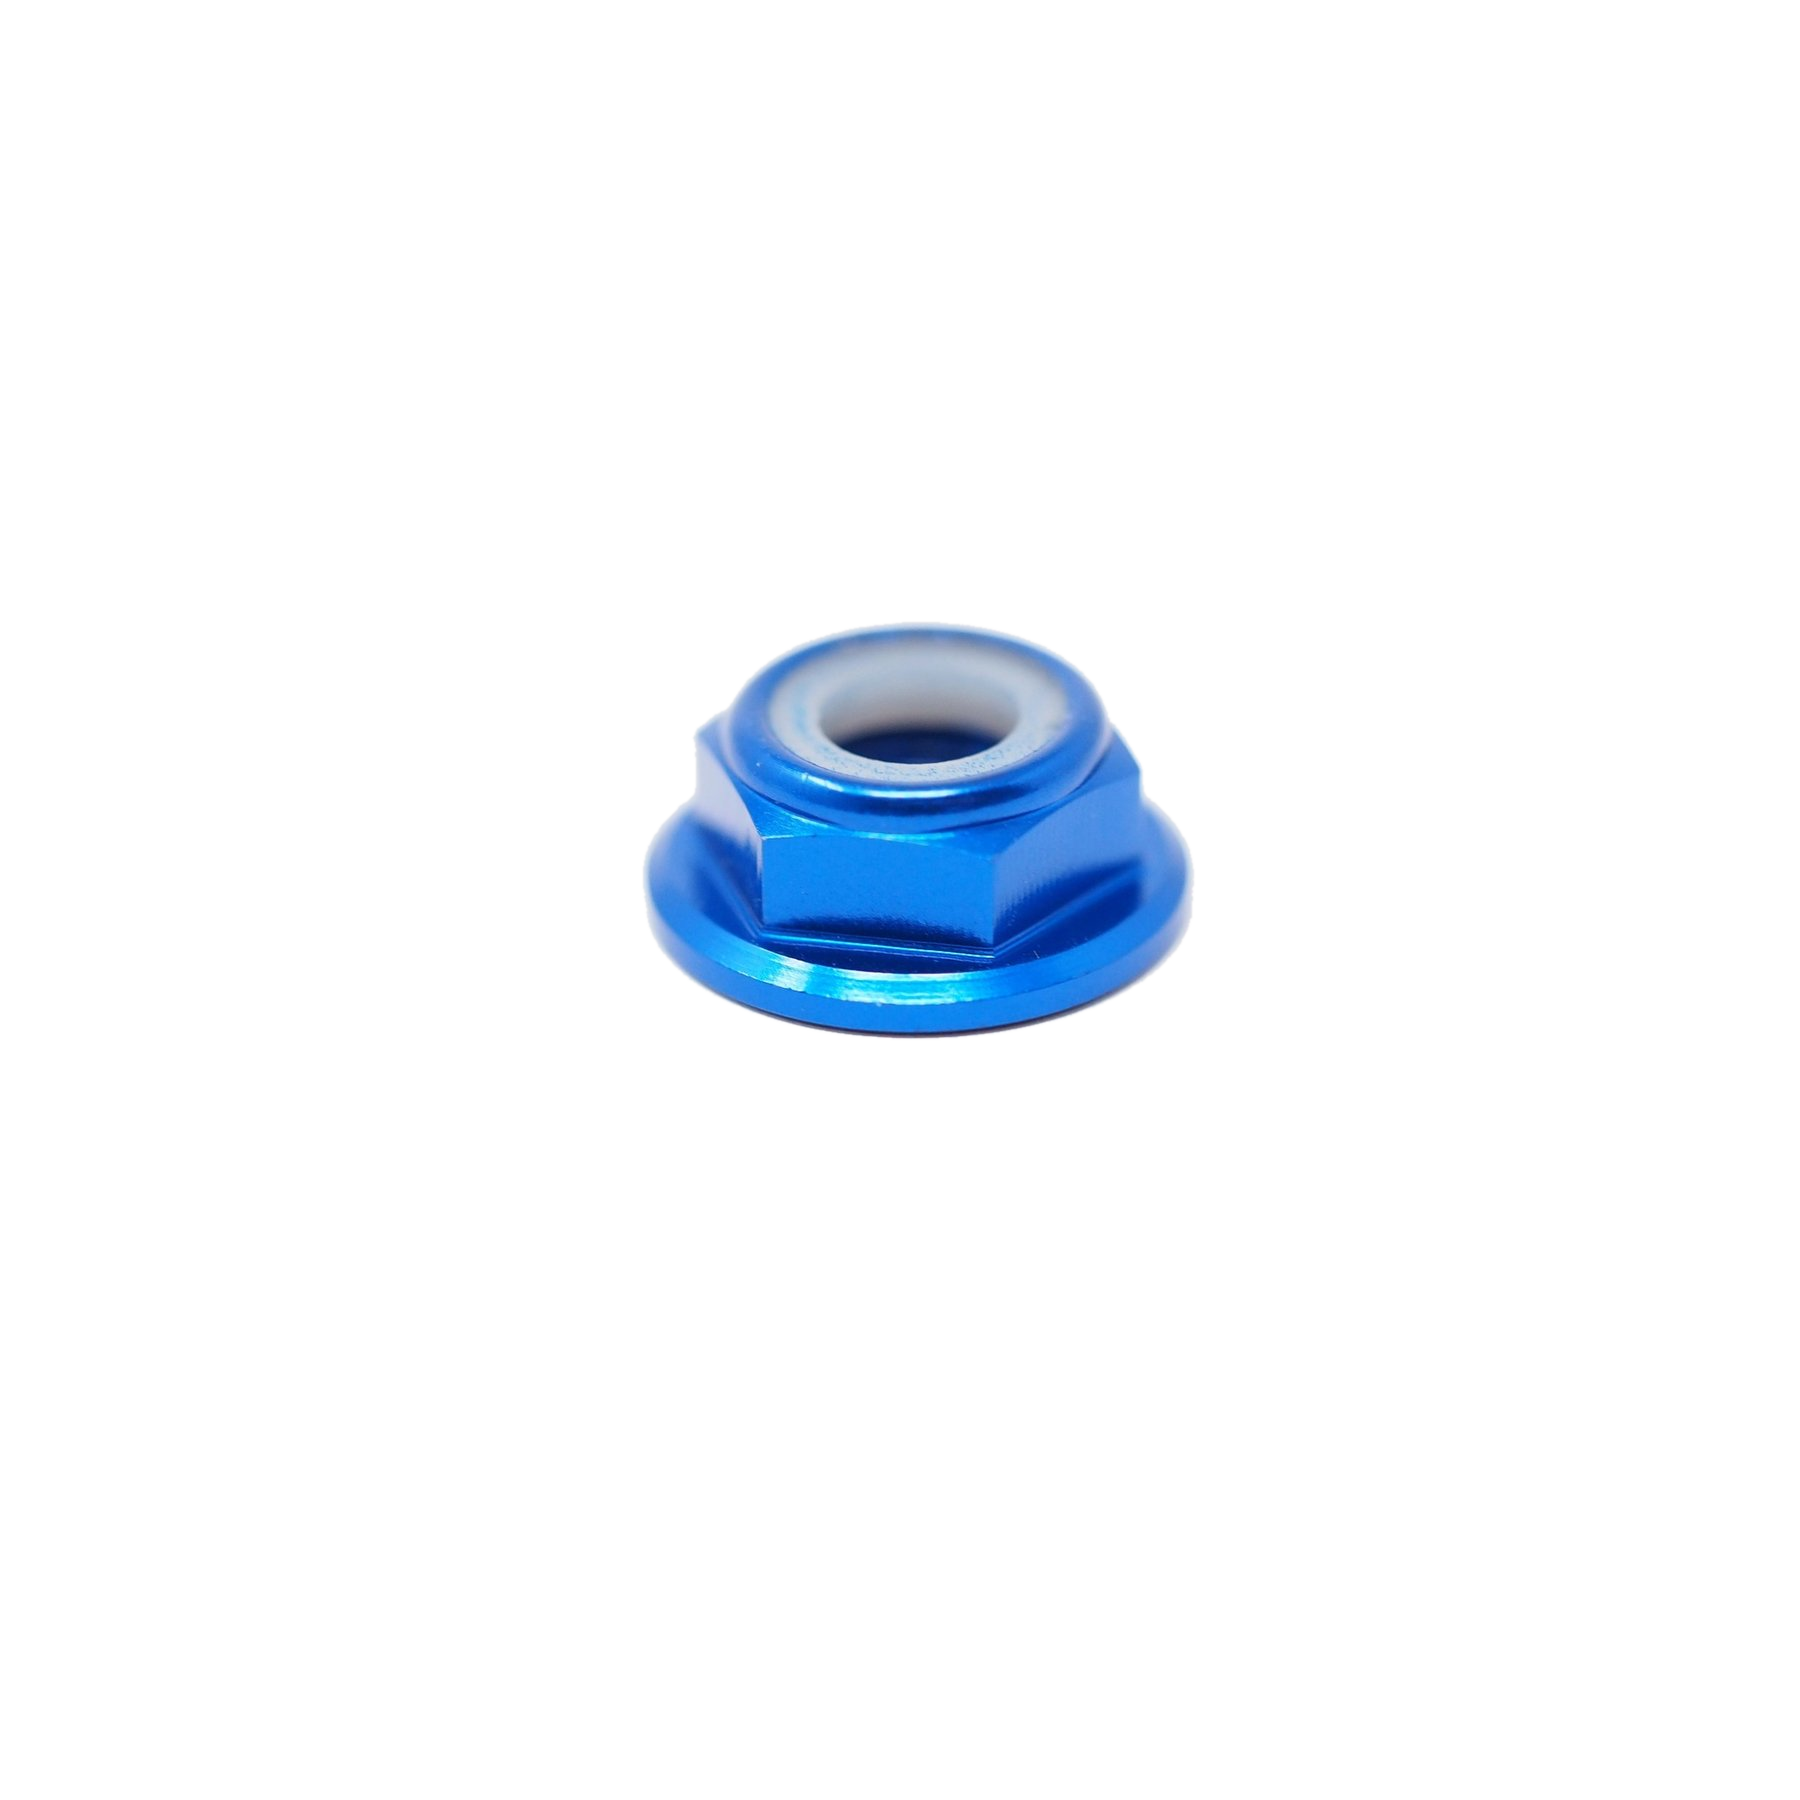 DEEZ NUTS M5 Aluminum Low profile nylon lock nut props